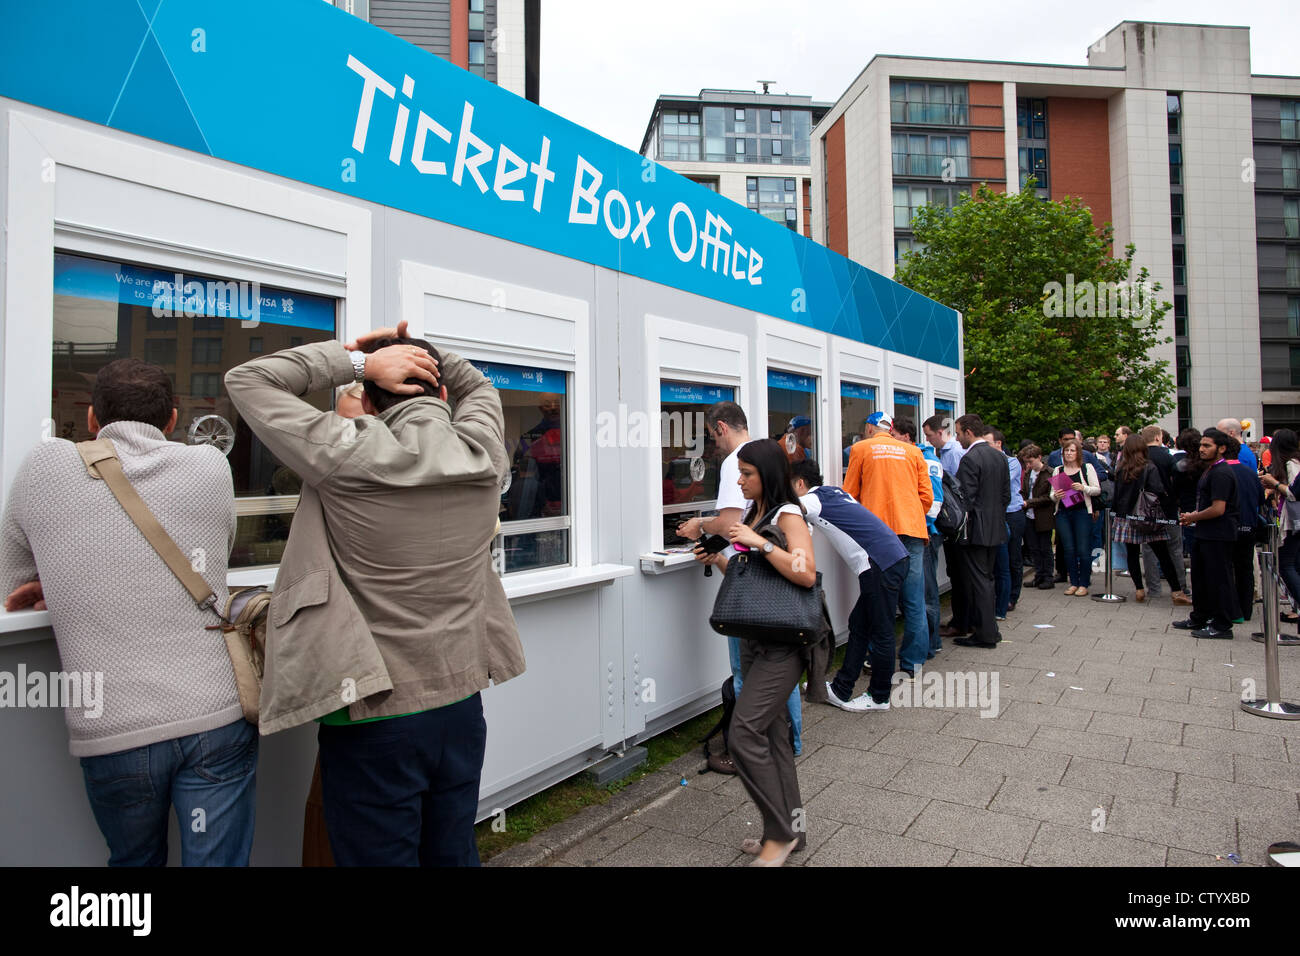 queues of london olympic games 2012 spectators at excel ticket box